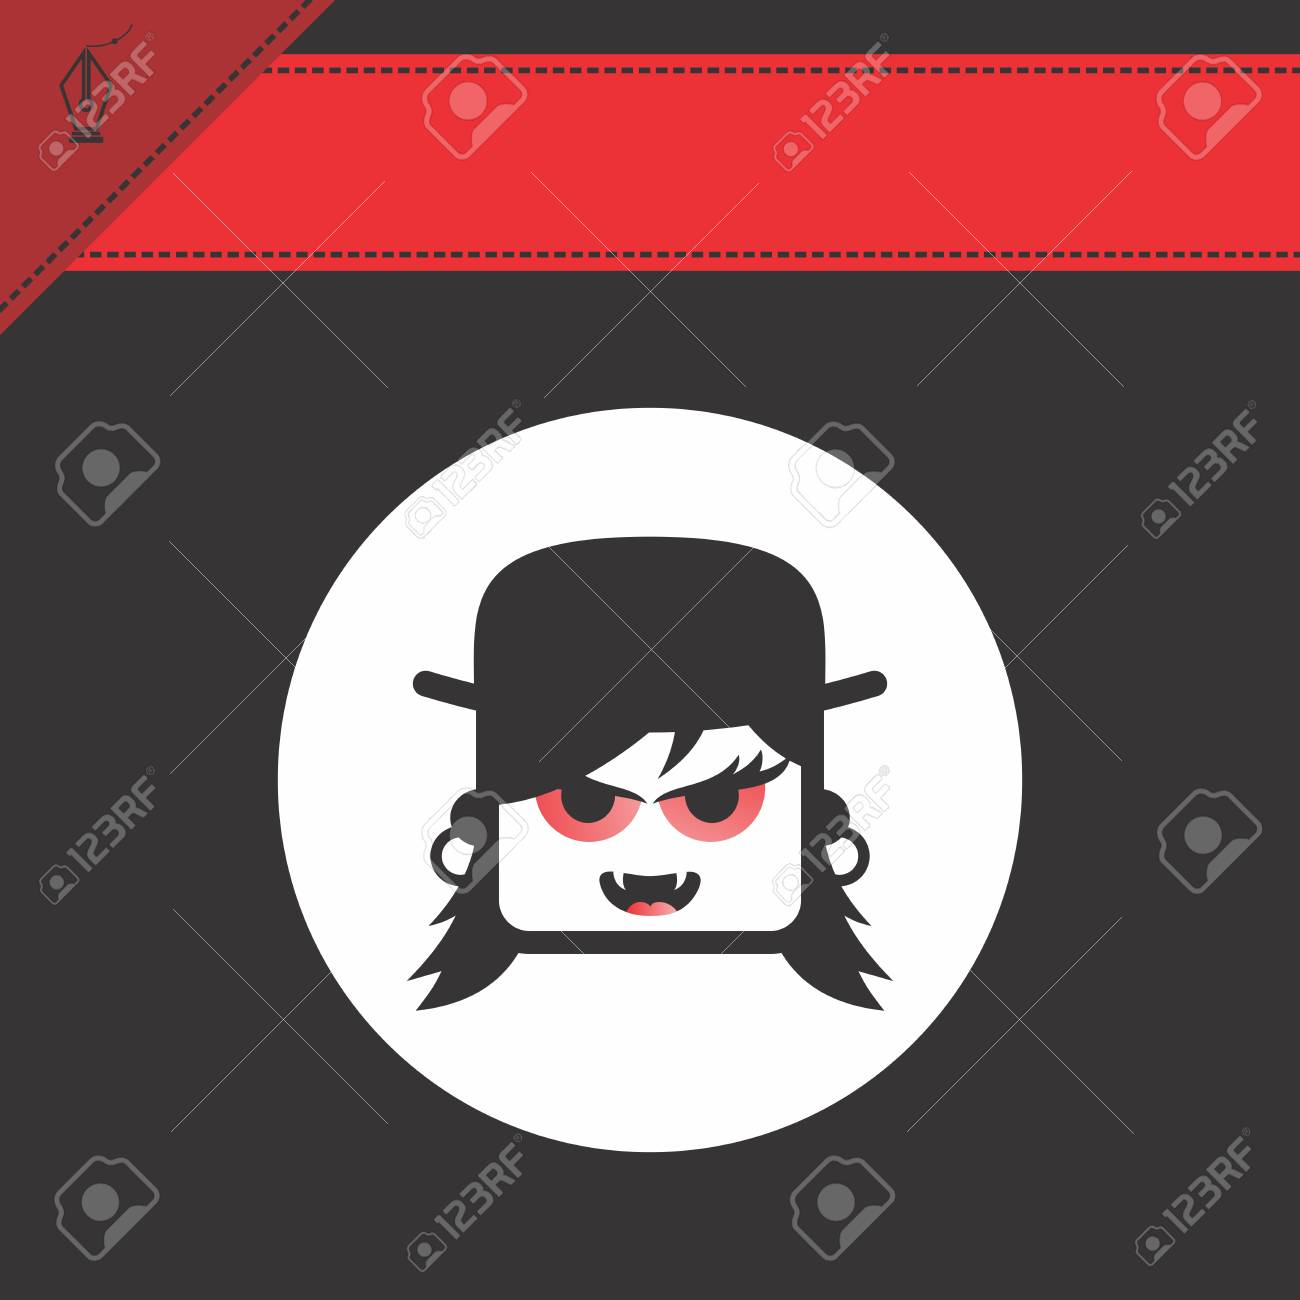 avatar portrait picture icon Stock Vector - 28009221